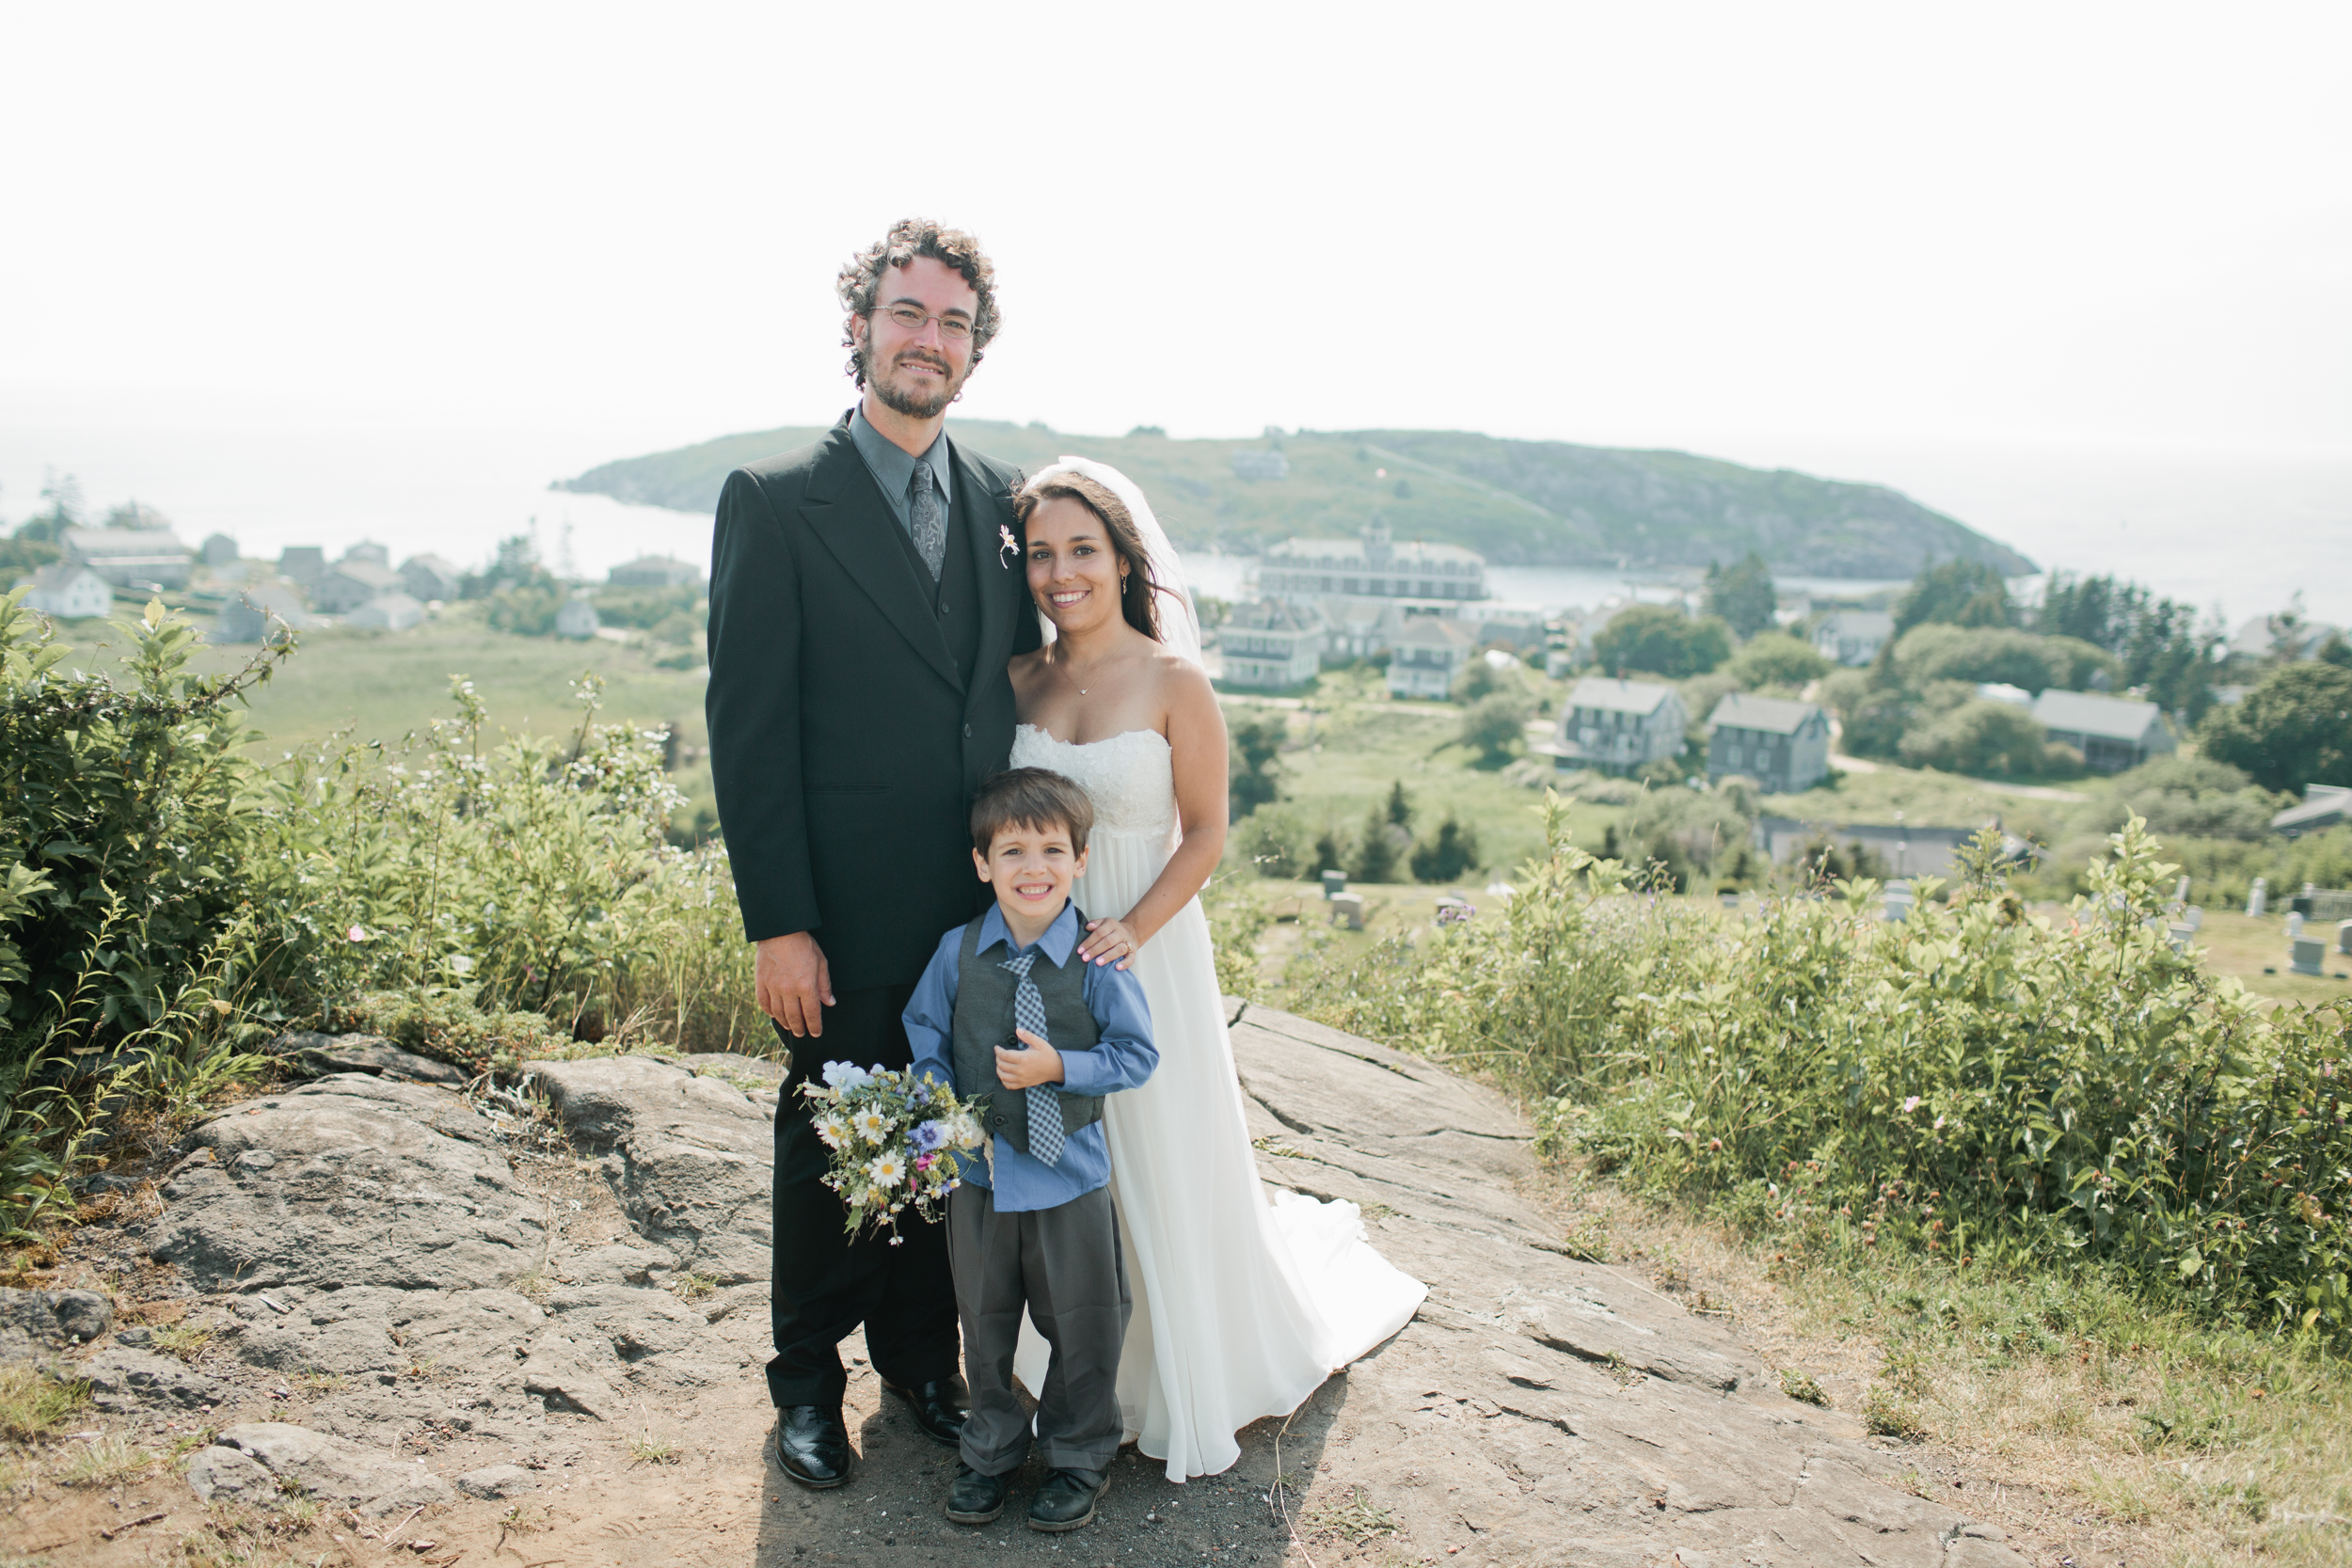 Monhegan-Island-Wedding-57.jpg